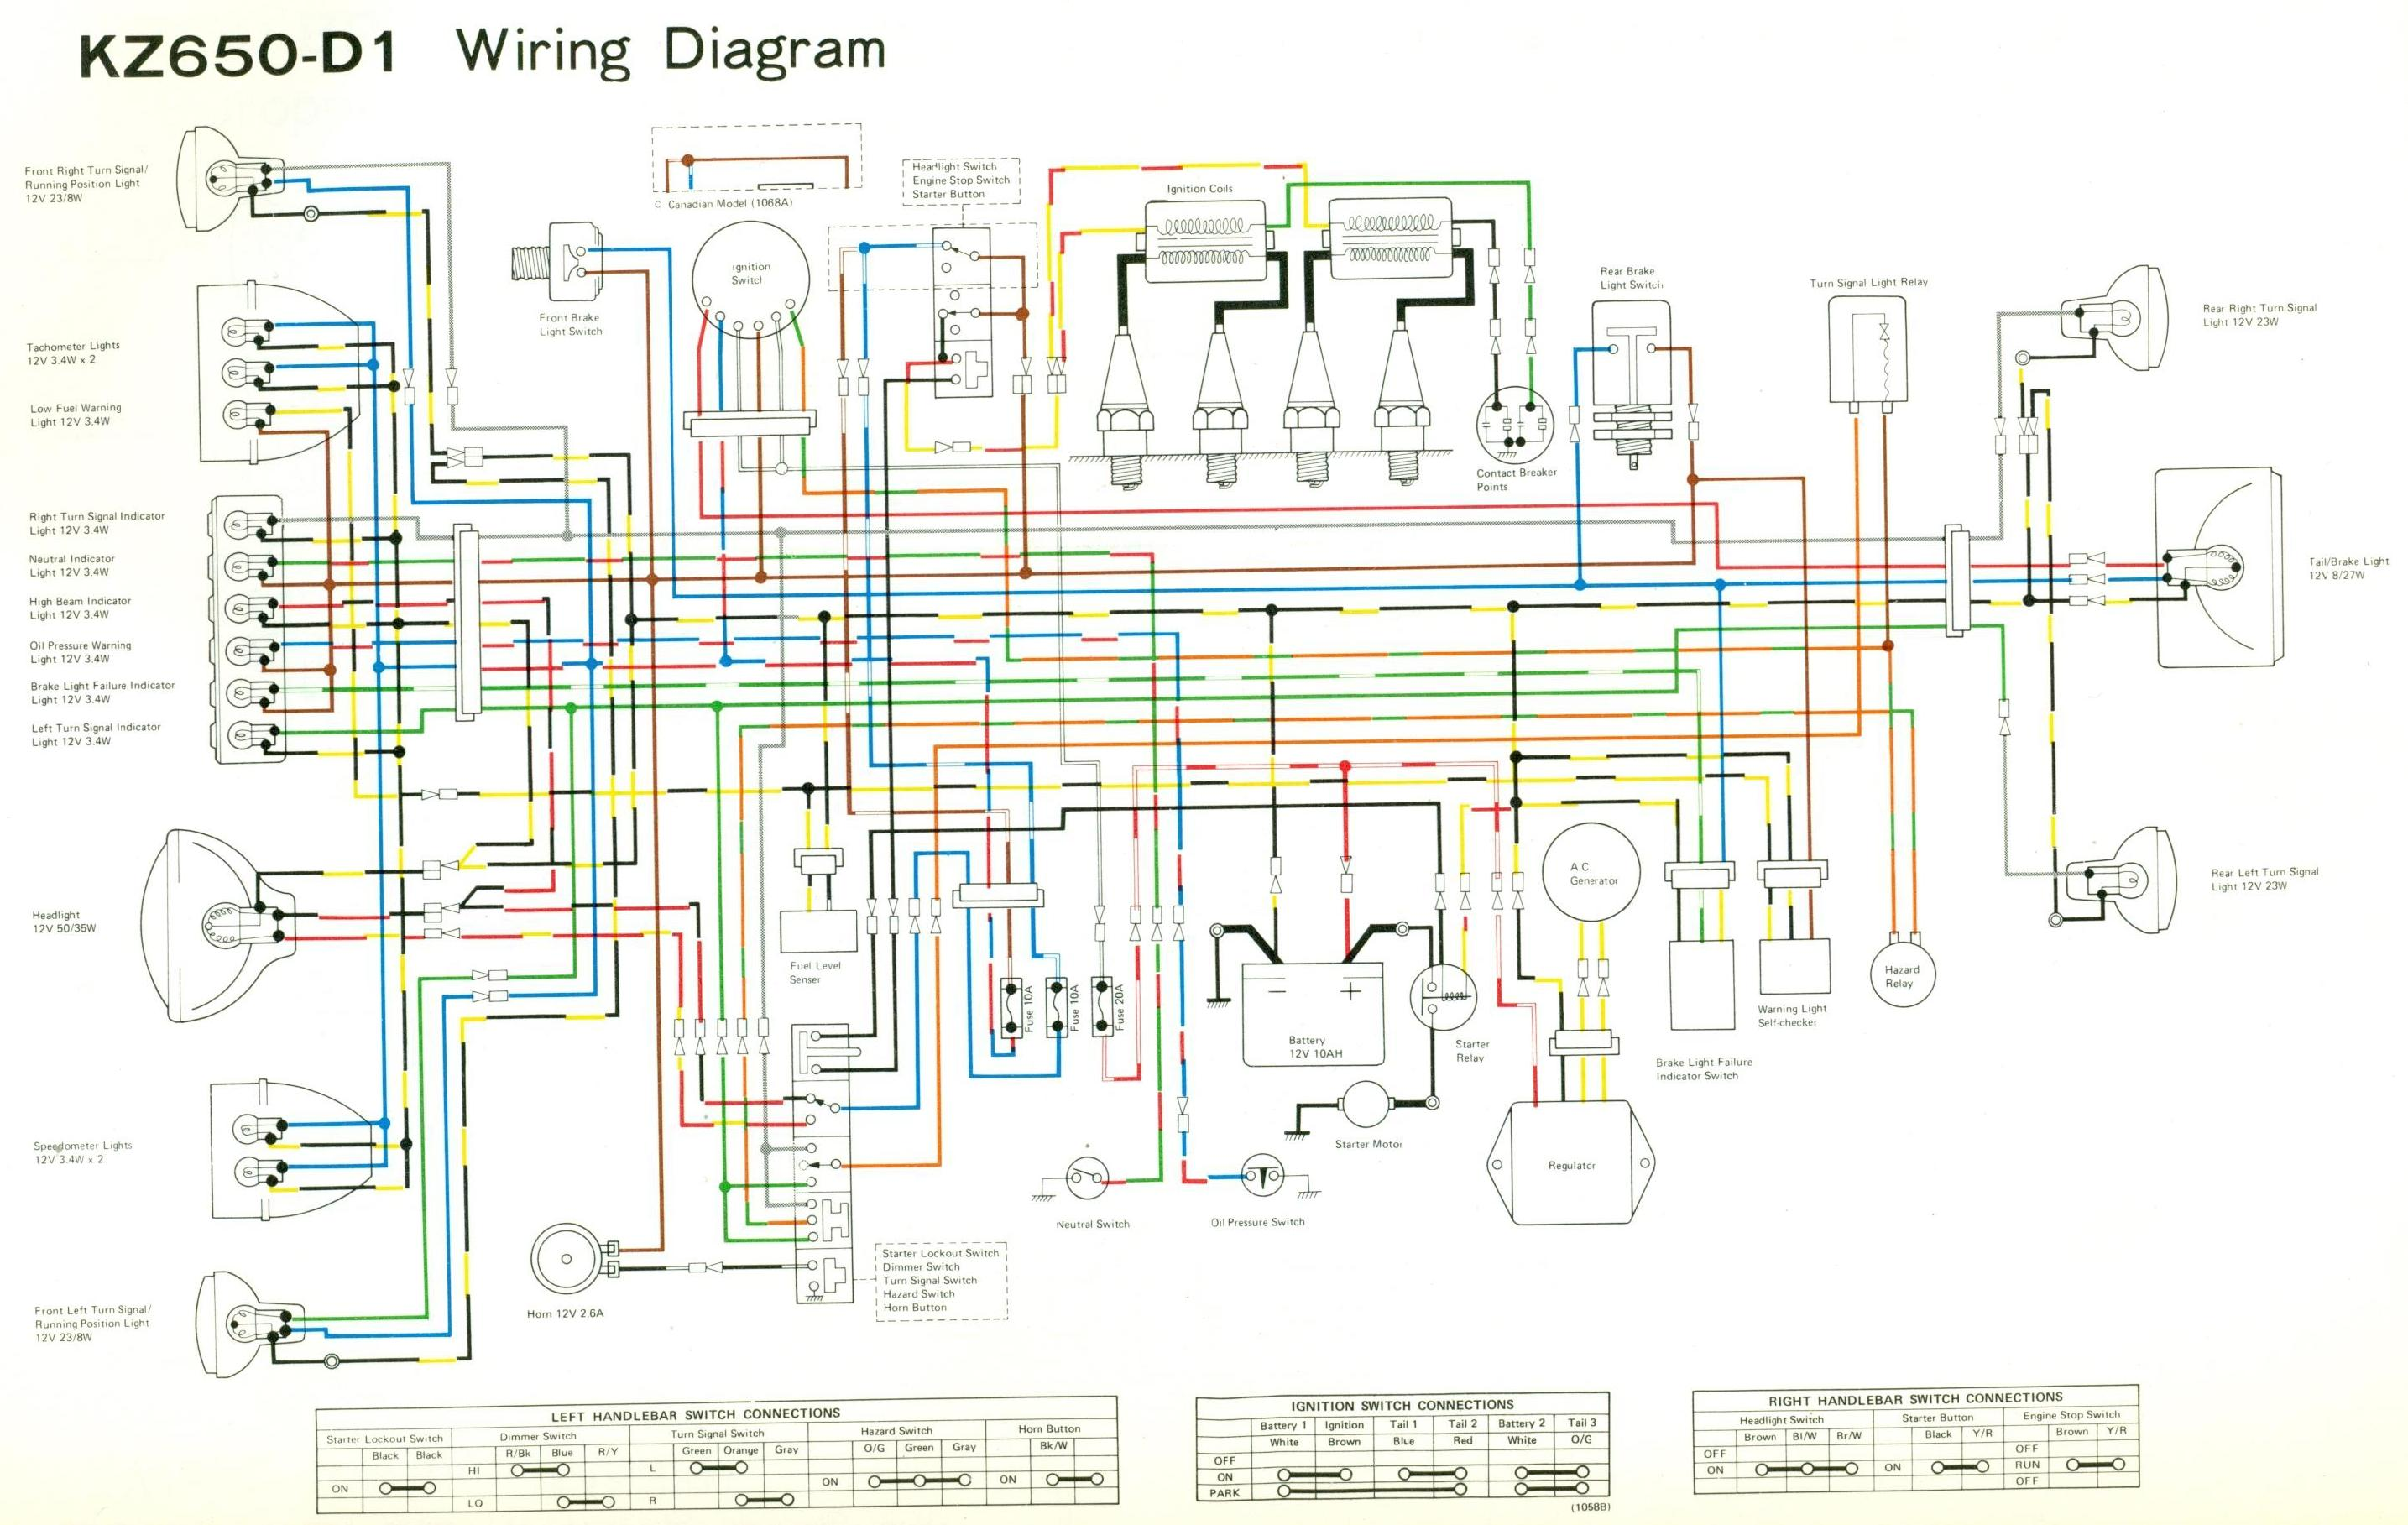 bmw r51 3 wiring diagram ribosomes animal cell wrg 3746 motorcycle schematic kz650 d jpg